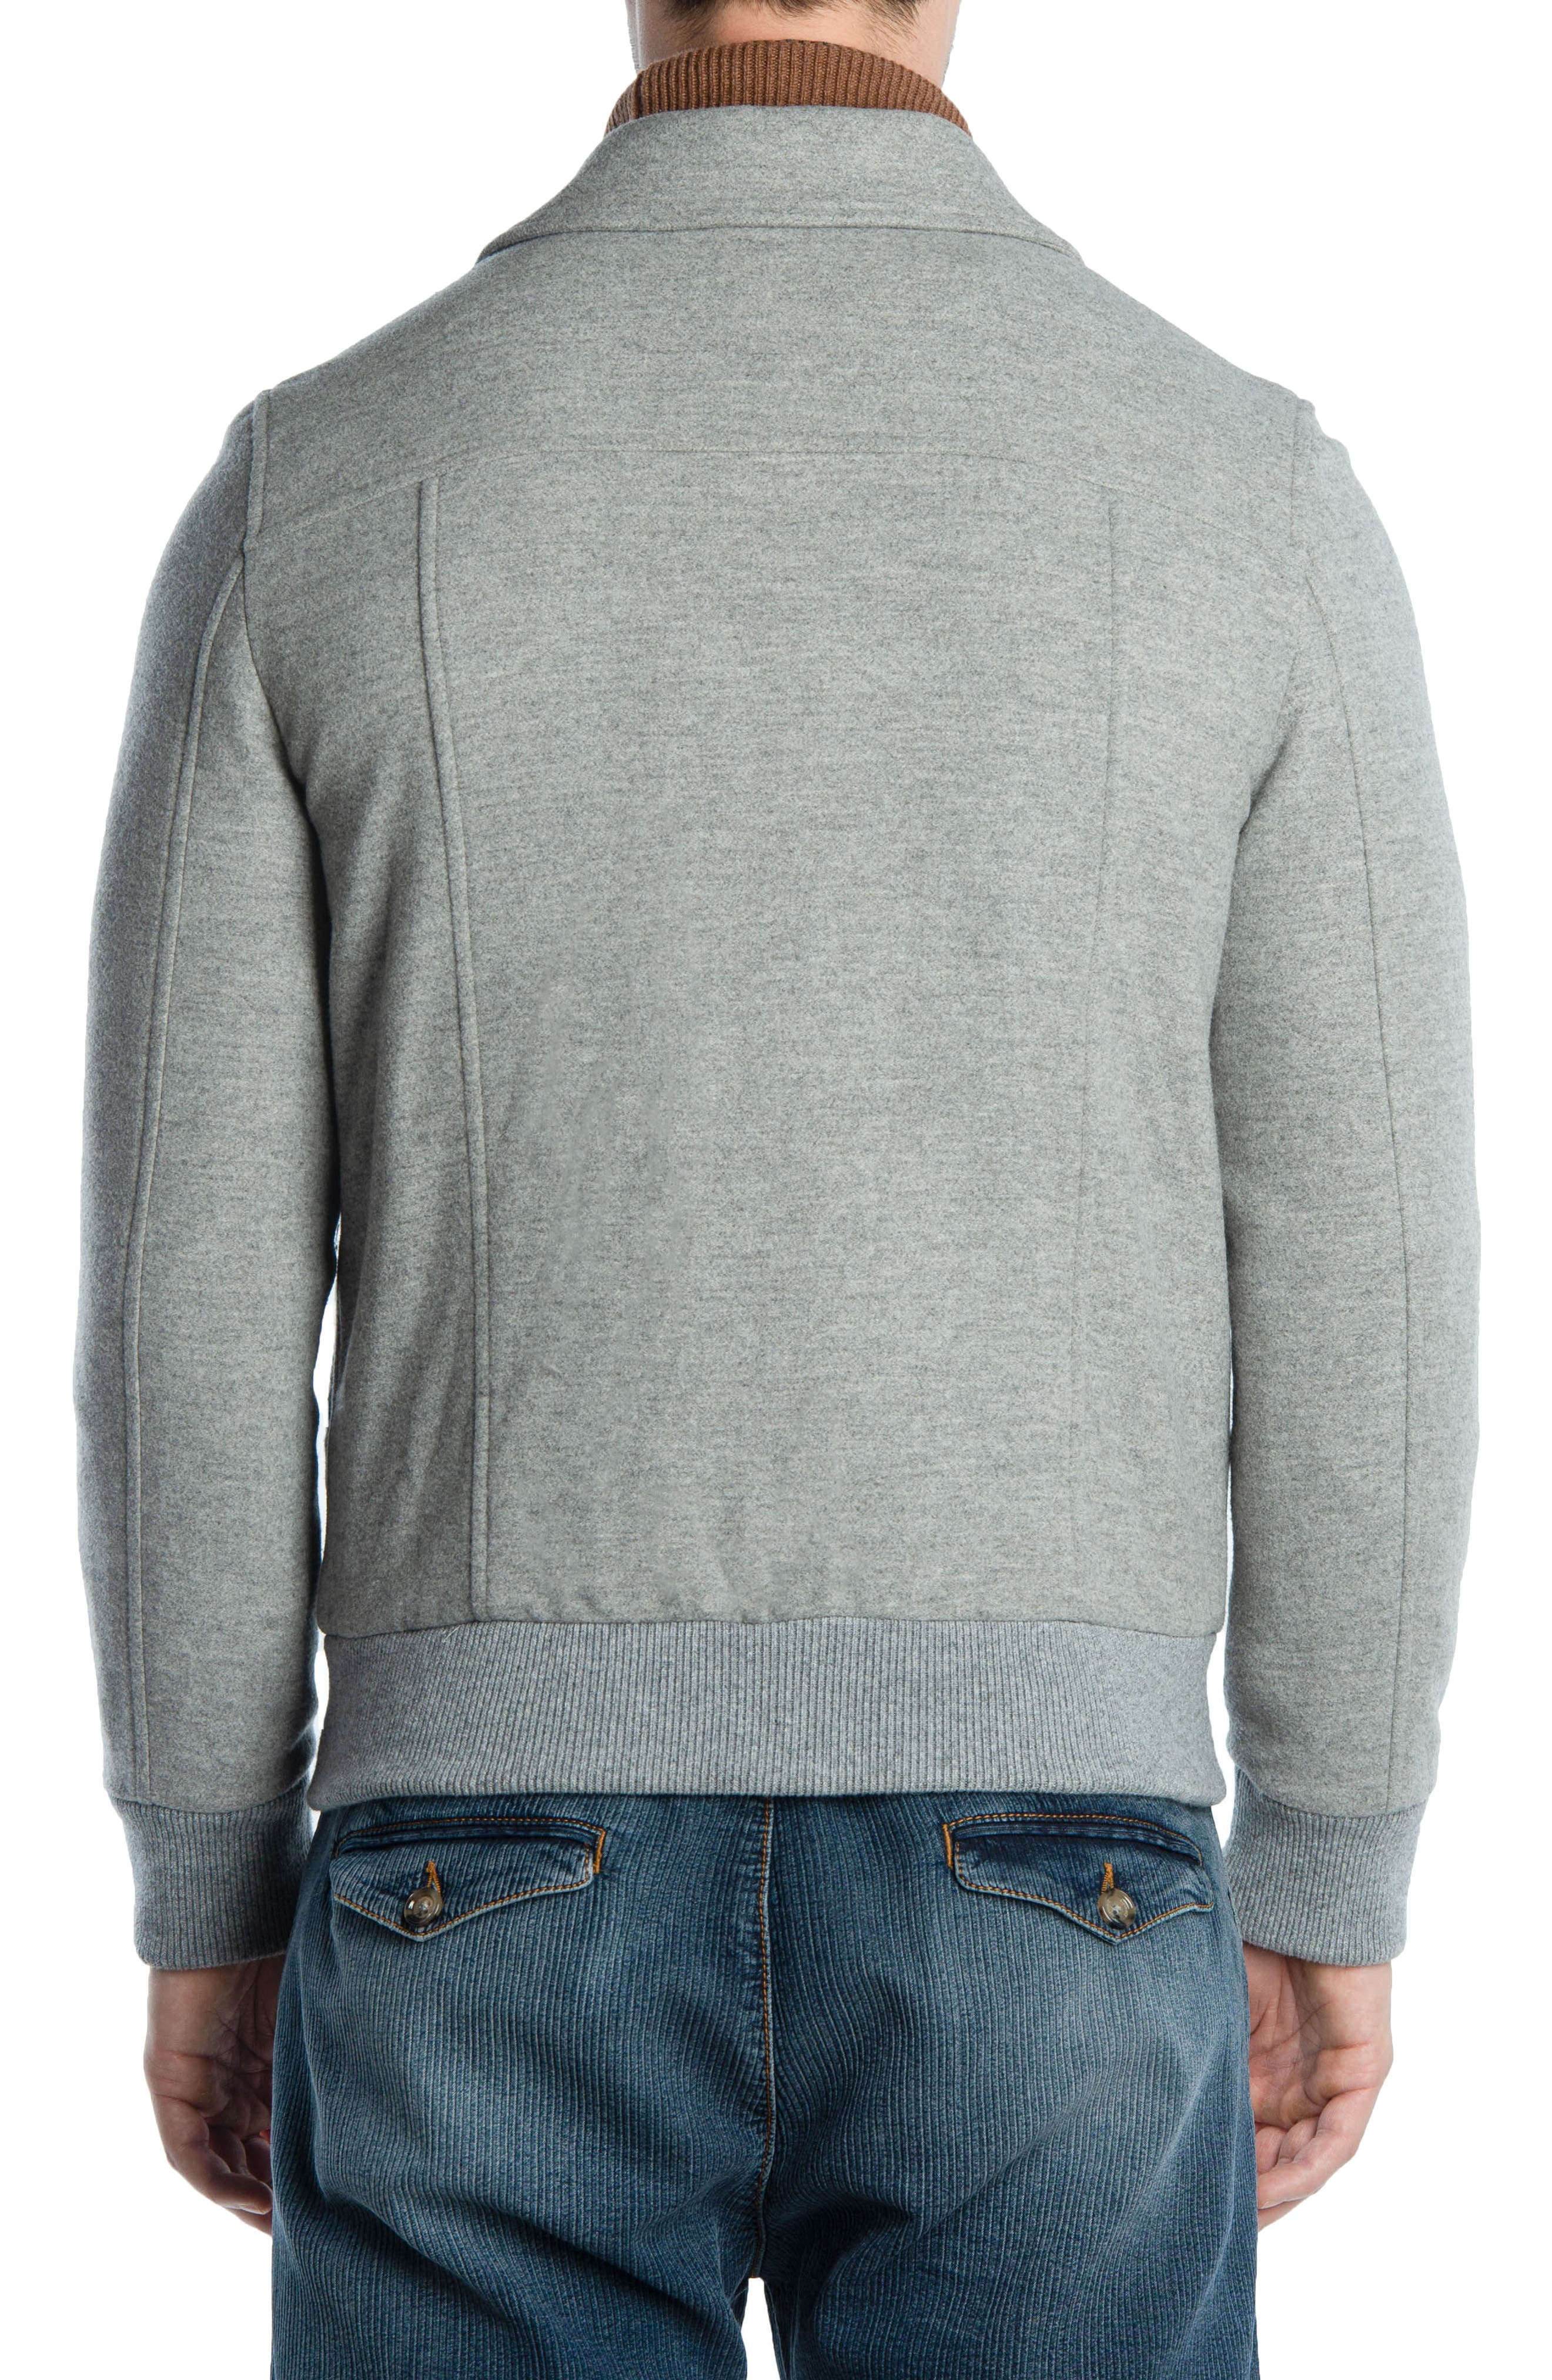 Wool & Cashmere Bomber Jacket,                             Alternate thumbnail 2, color,                             LIGHT GREY